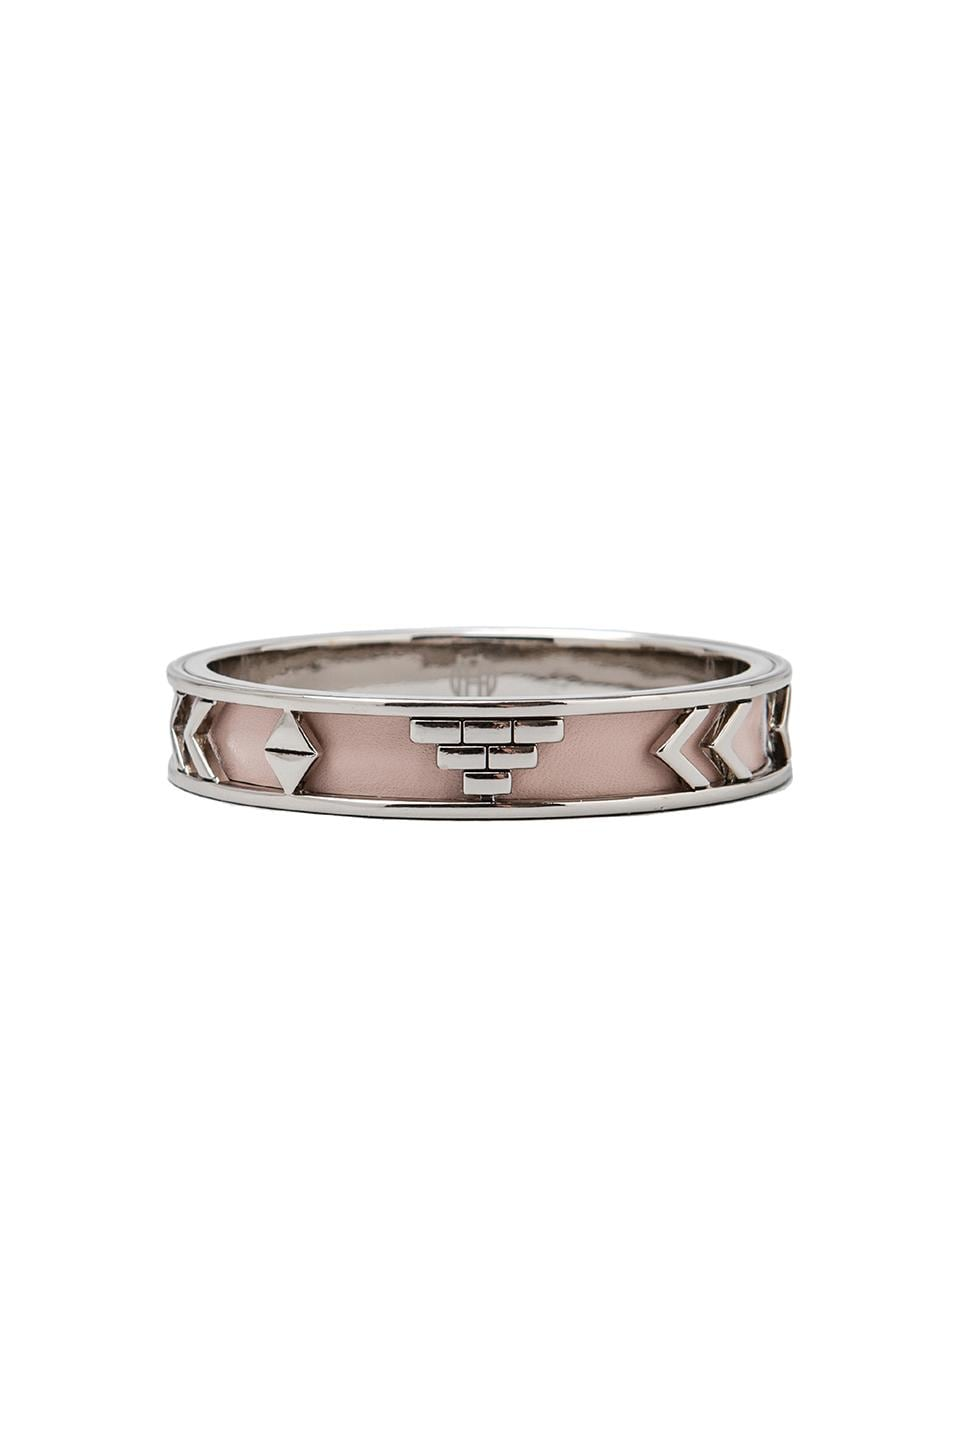 House of Harlow Aztec Bangles in Palladium with Blush Leather